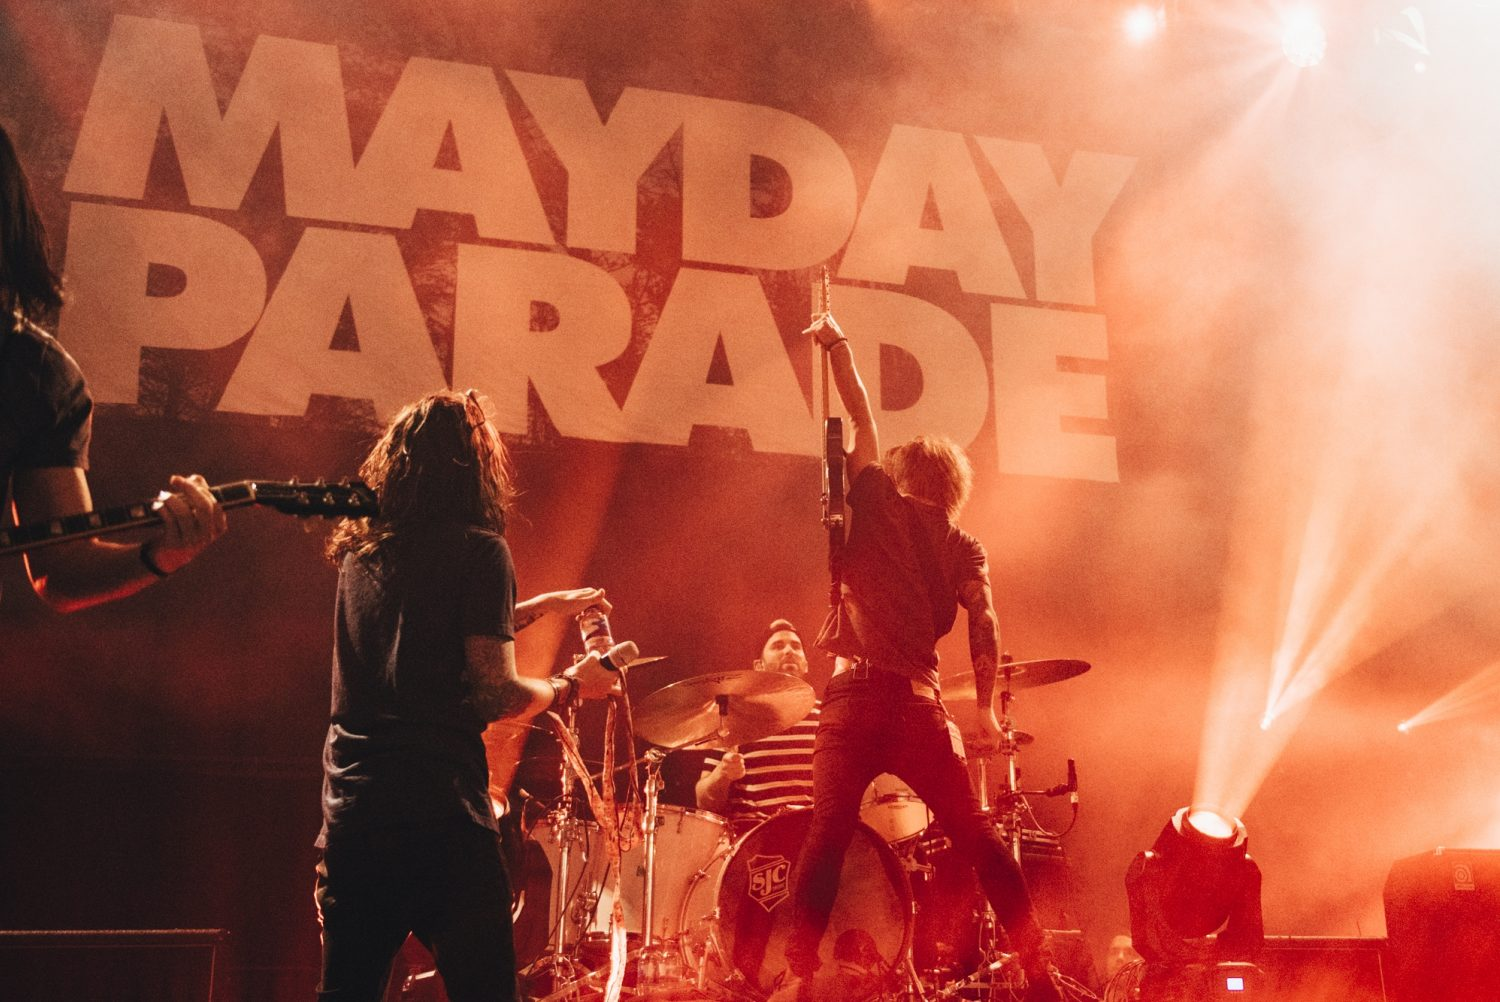 The Wonder Years, Mayday Parade, Movements and Pronoun team up for a gig to remember at the Troxy, London